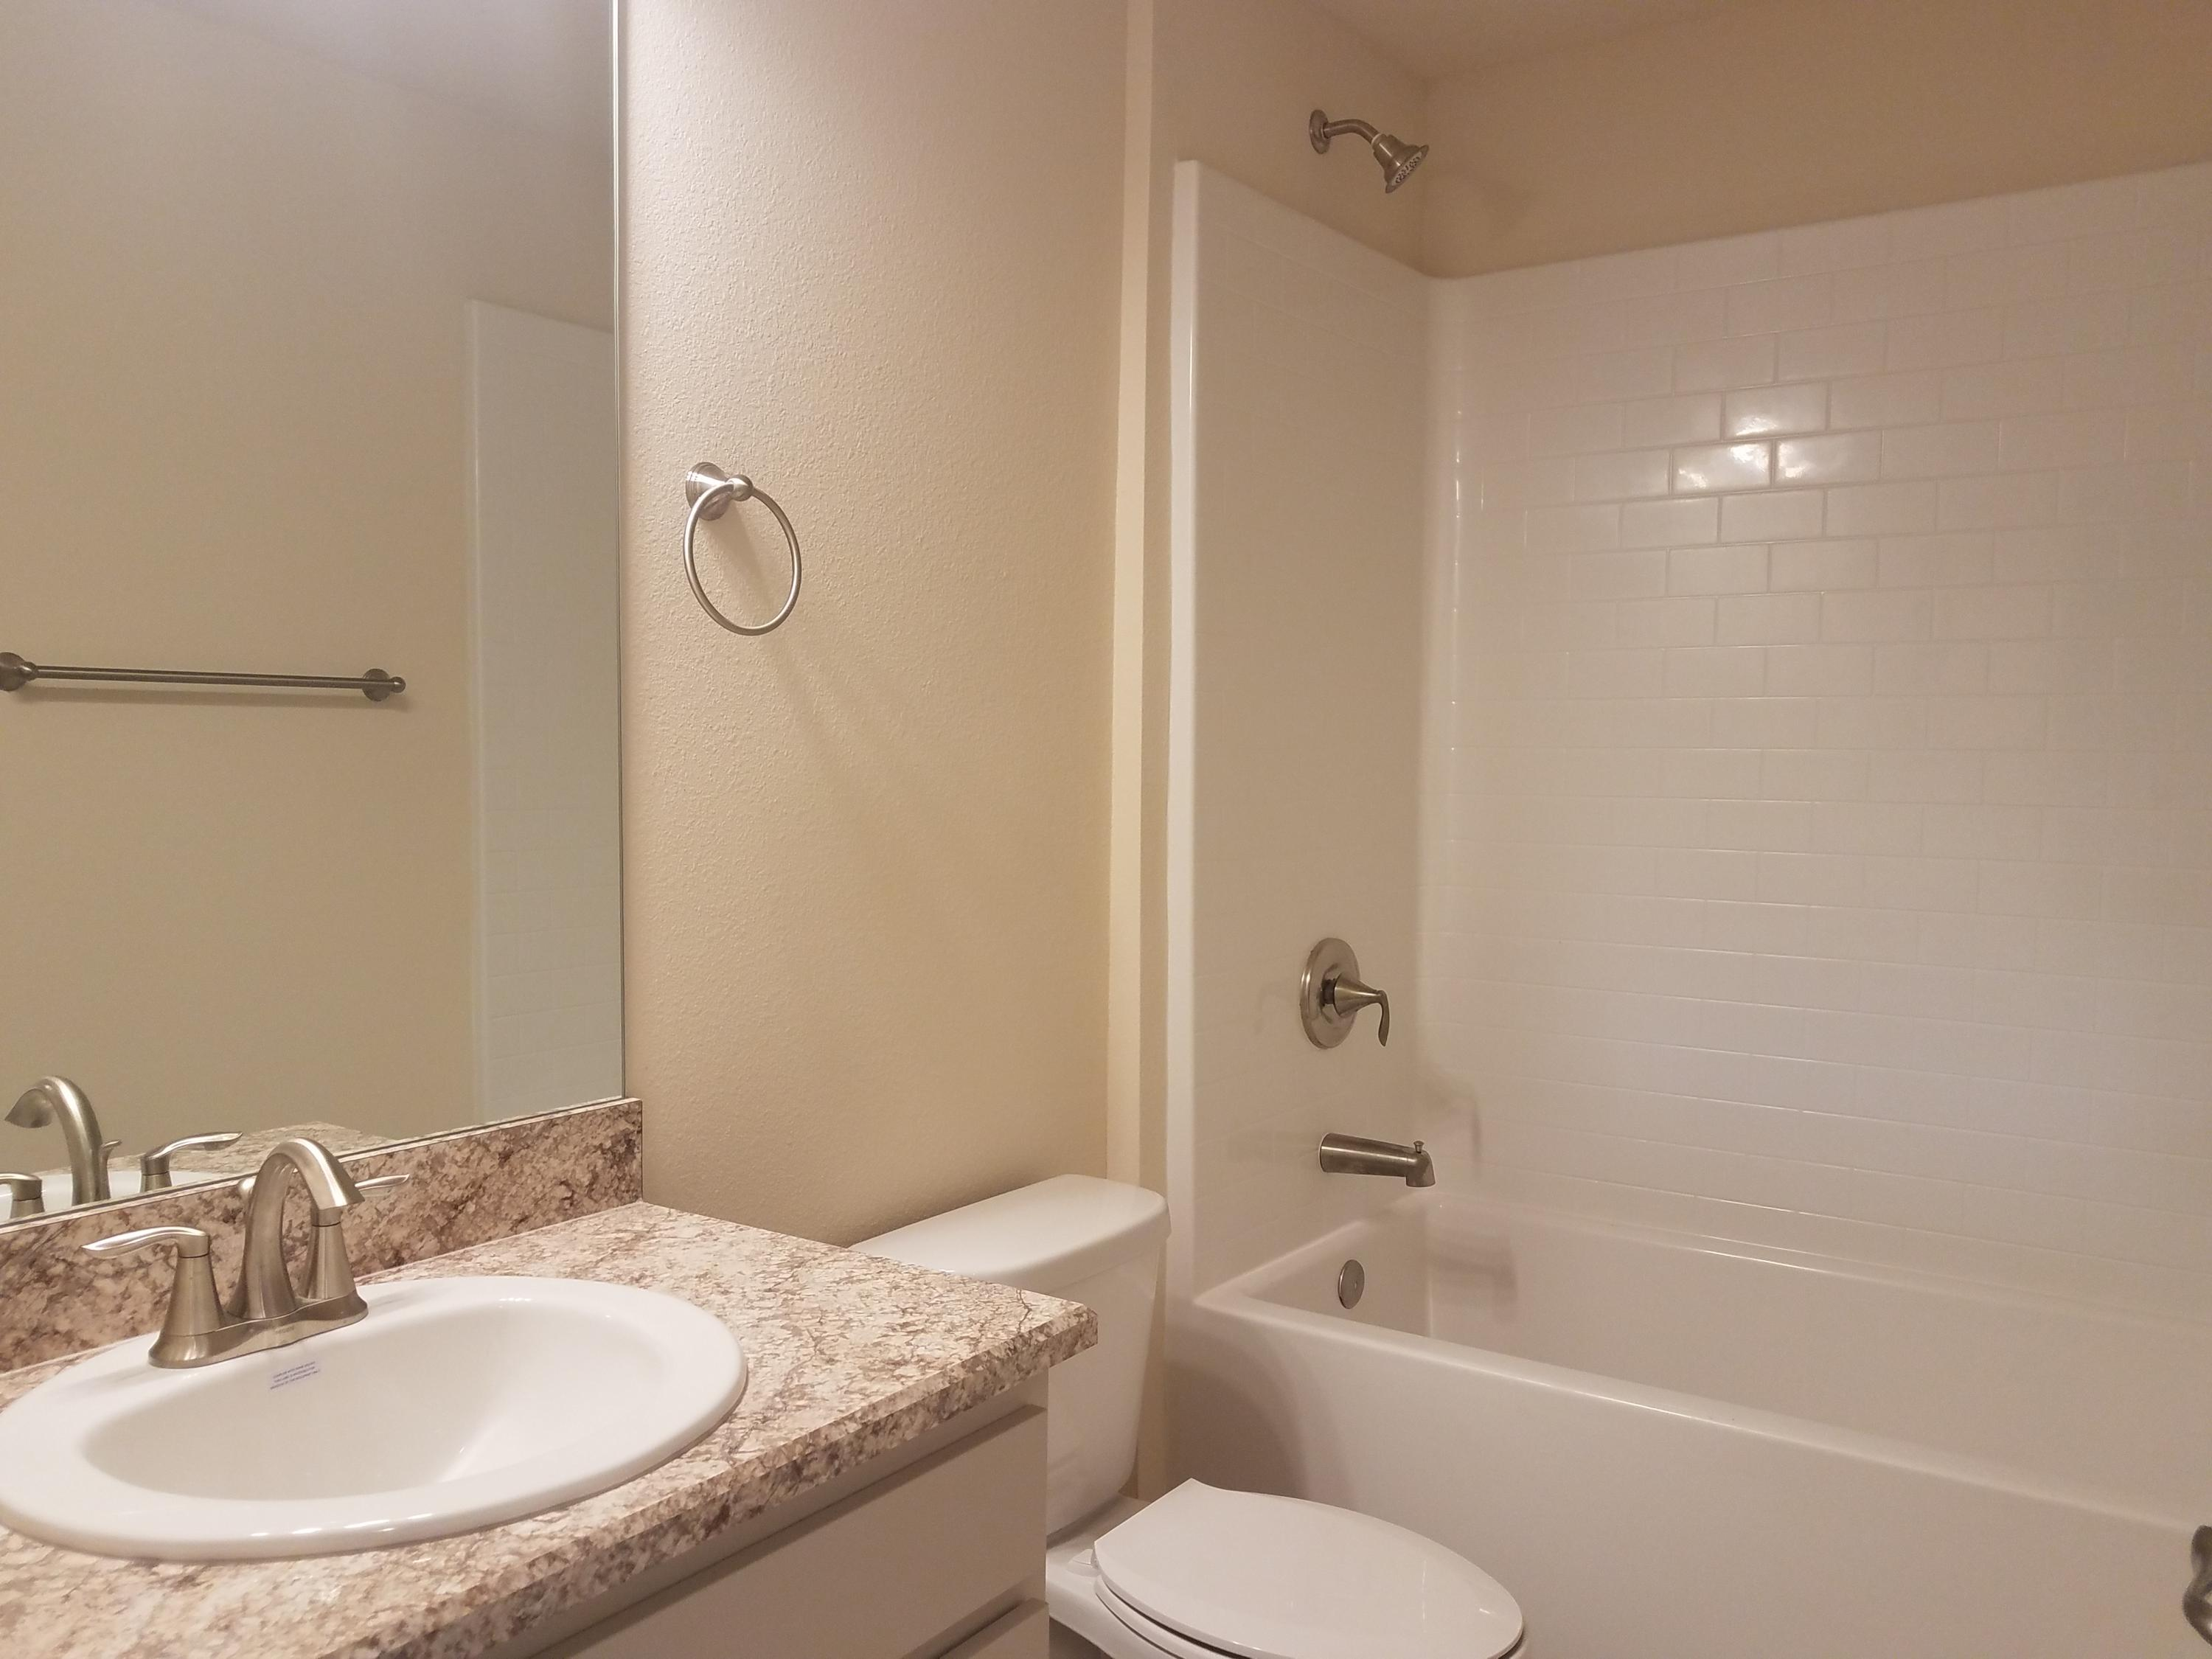 RIVER PLACE ON THE ST. LUCIE HOMES FOR SALE